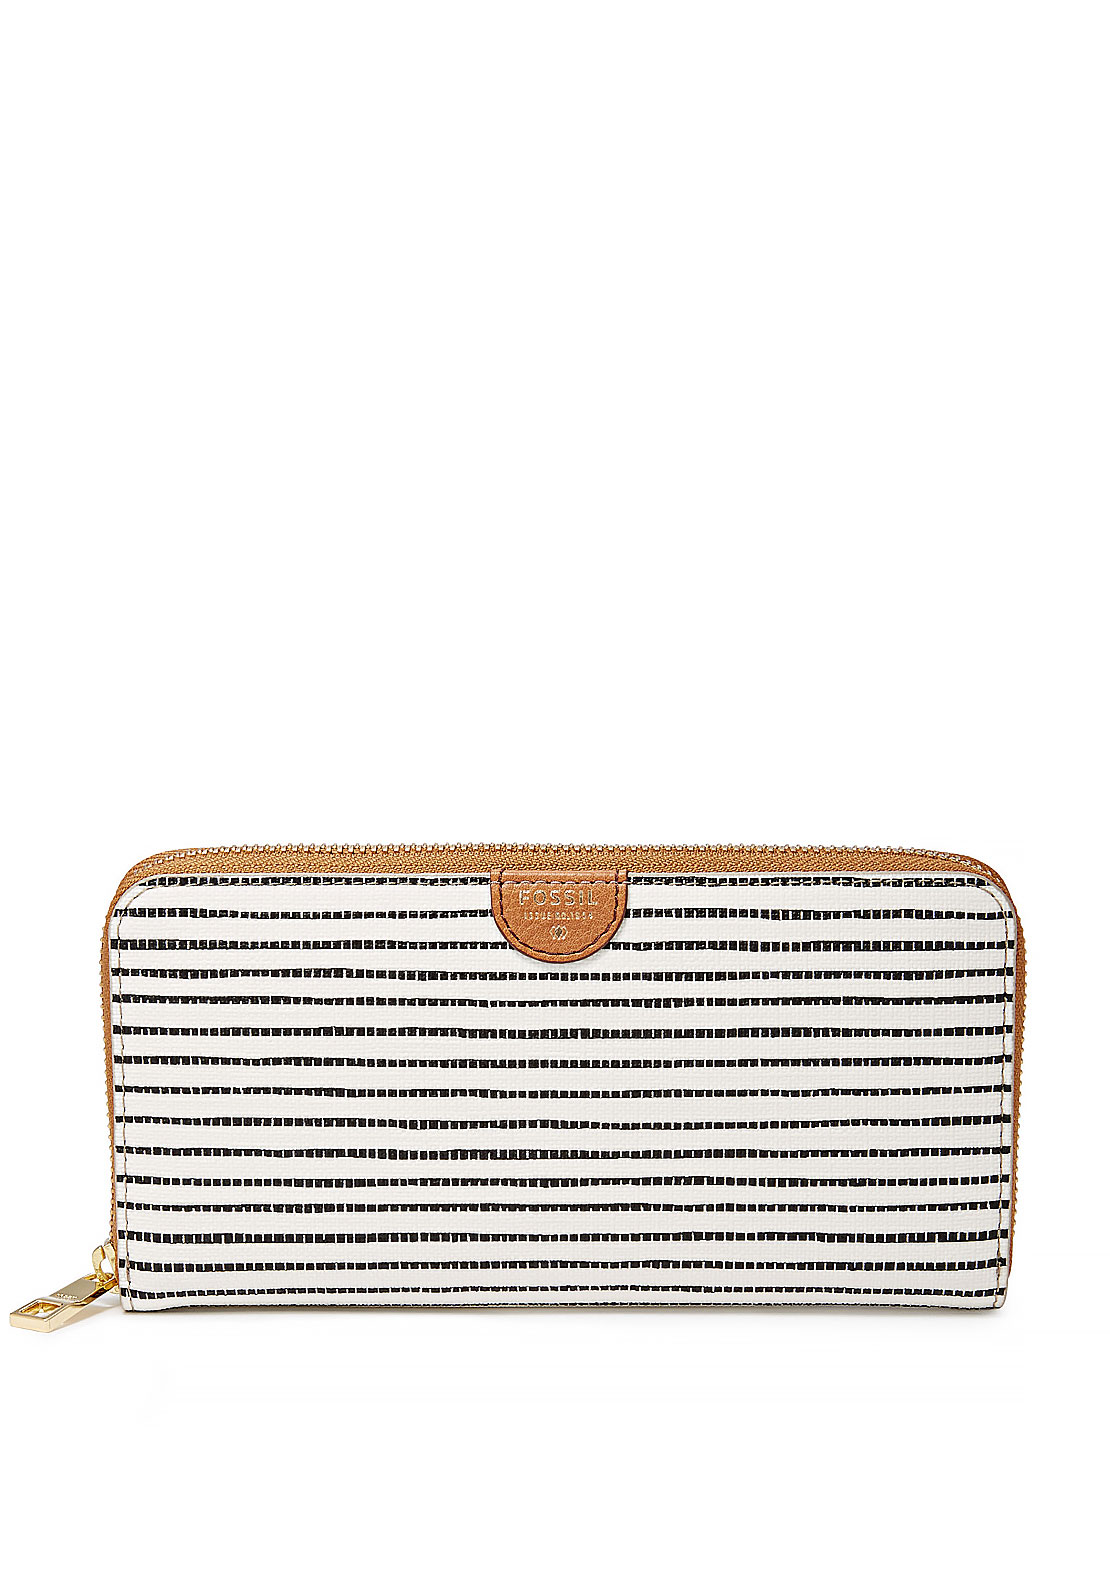 Fossil Sydney Striped Zipped Wallet, White and Black